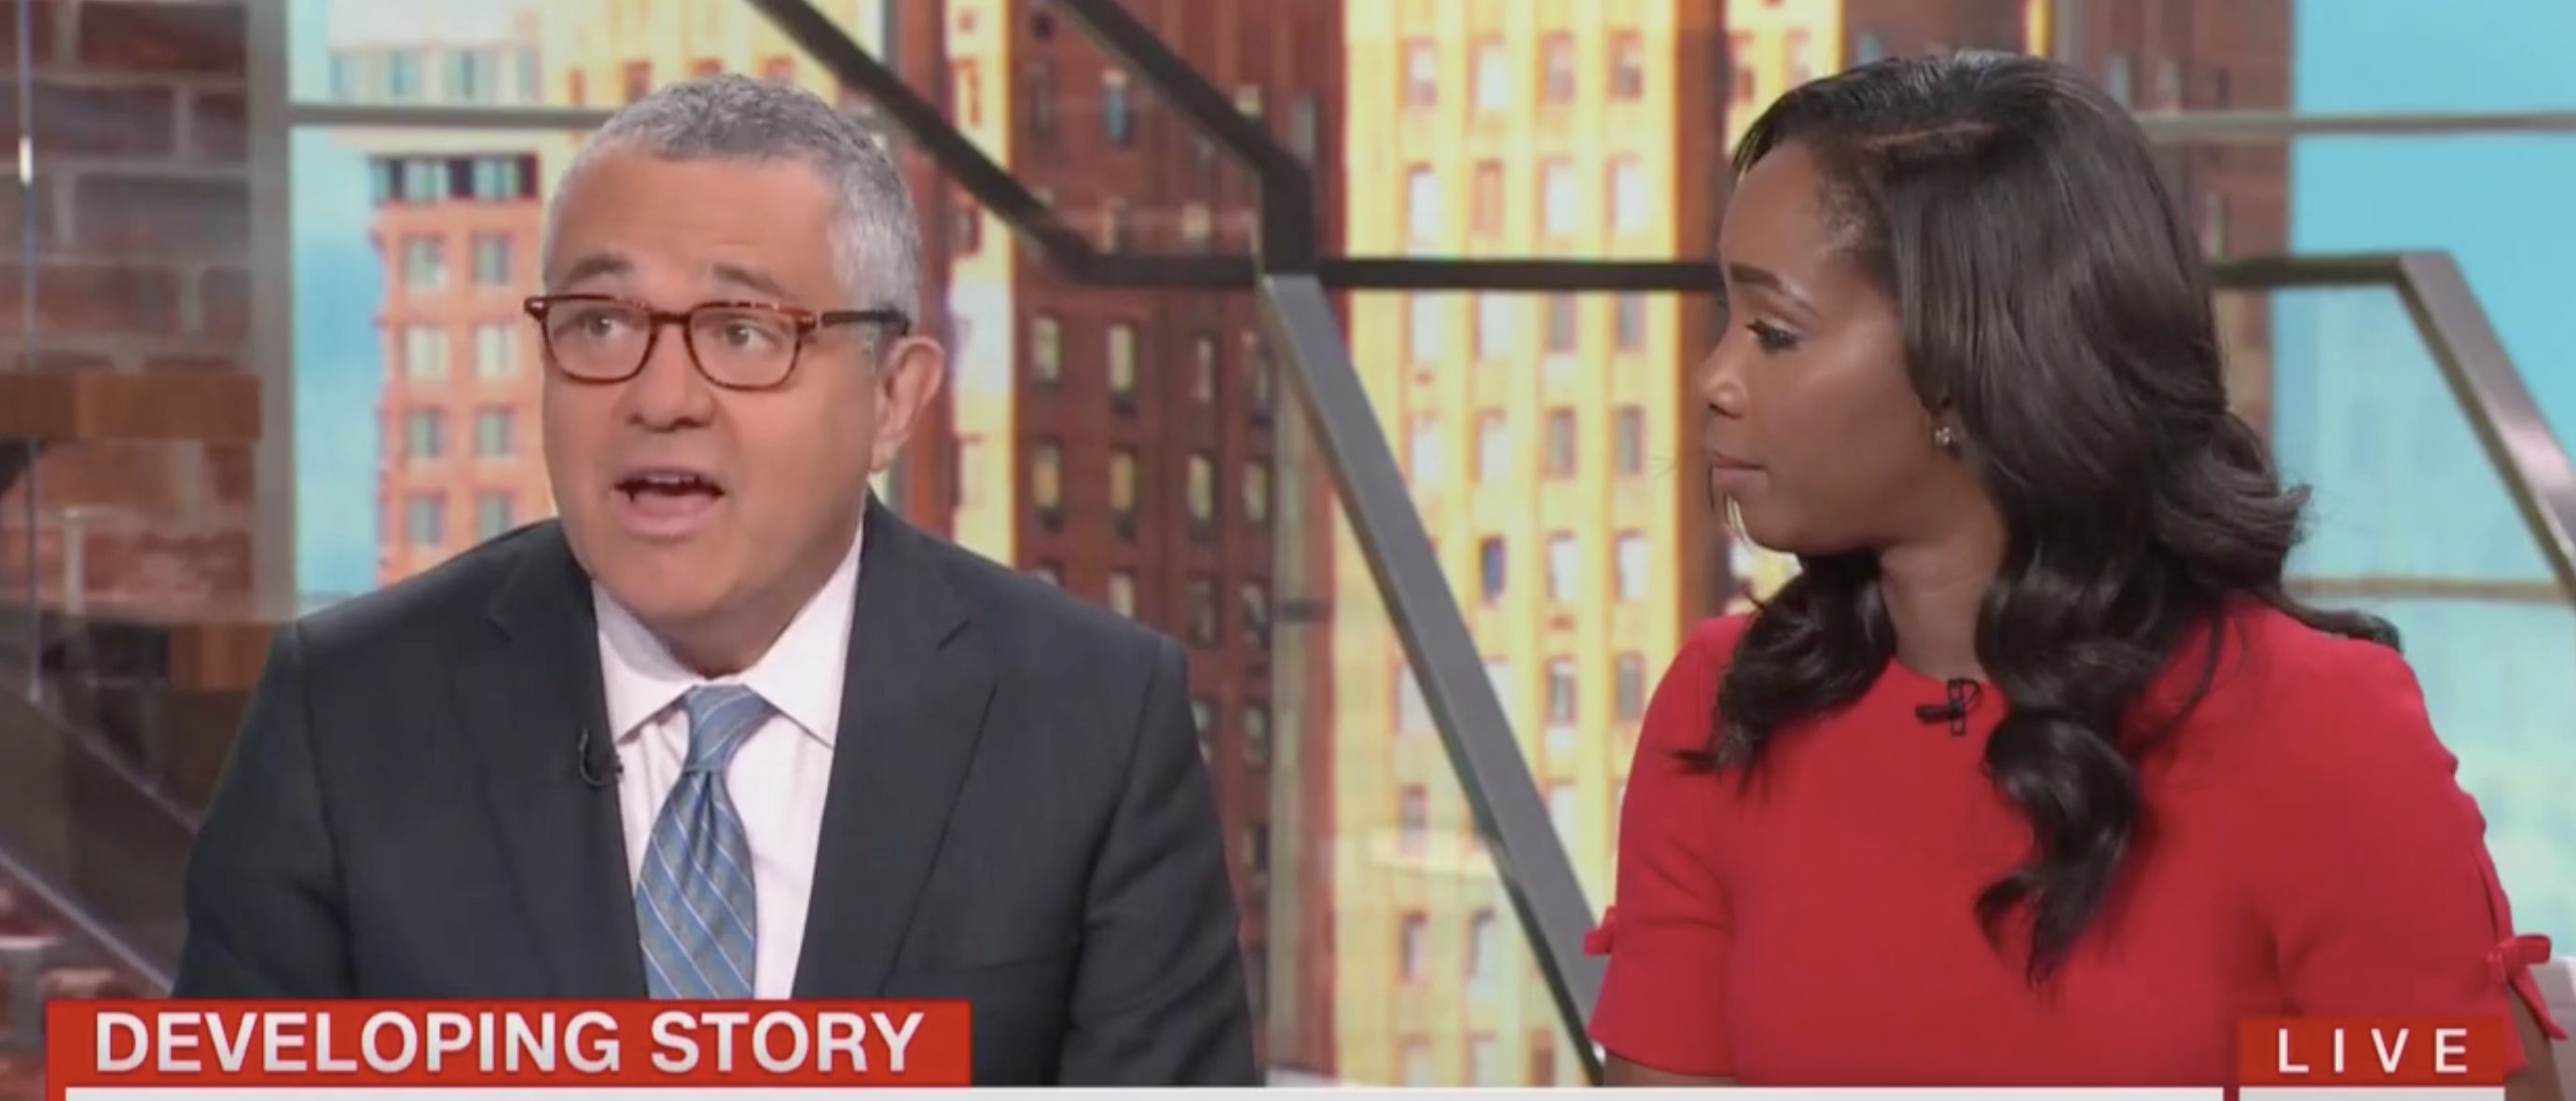 CNN Analyst Says He Regrets Talking About Clinton Emails, Blames It For Her 2016 Election Loss